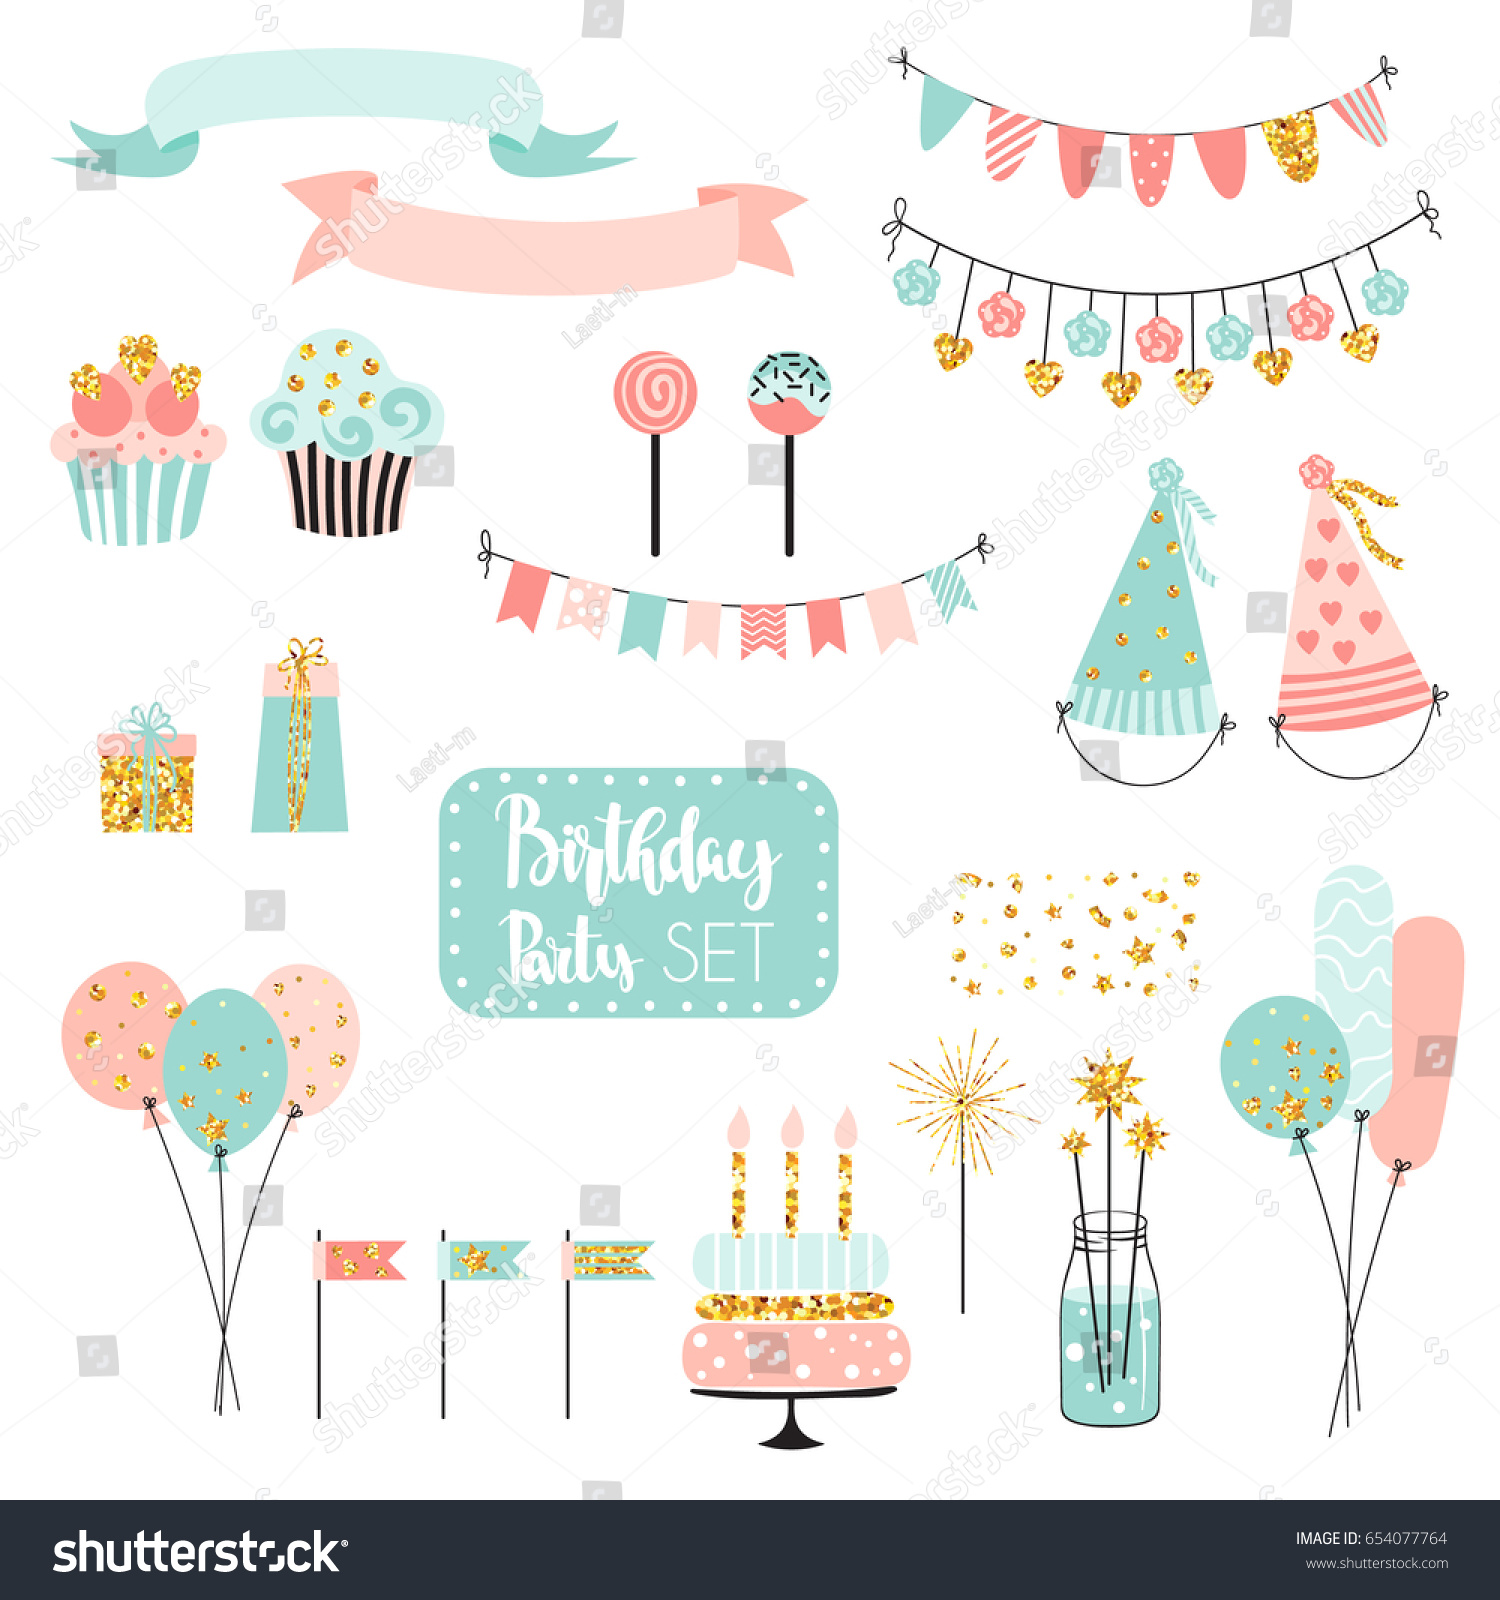 Set Vector Birthday Party Elements Colorful Stock Vector 654077764